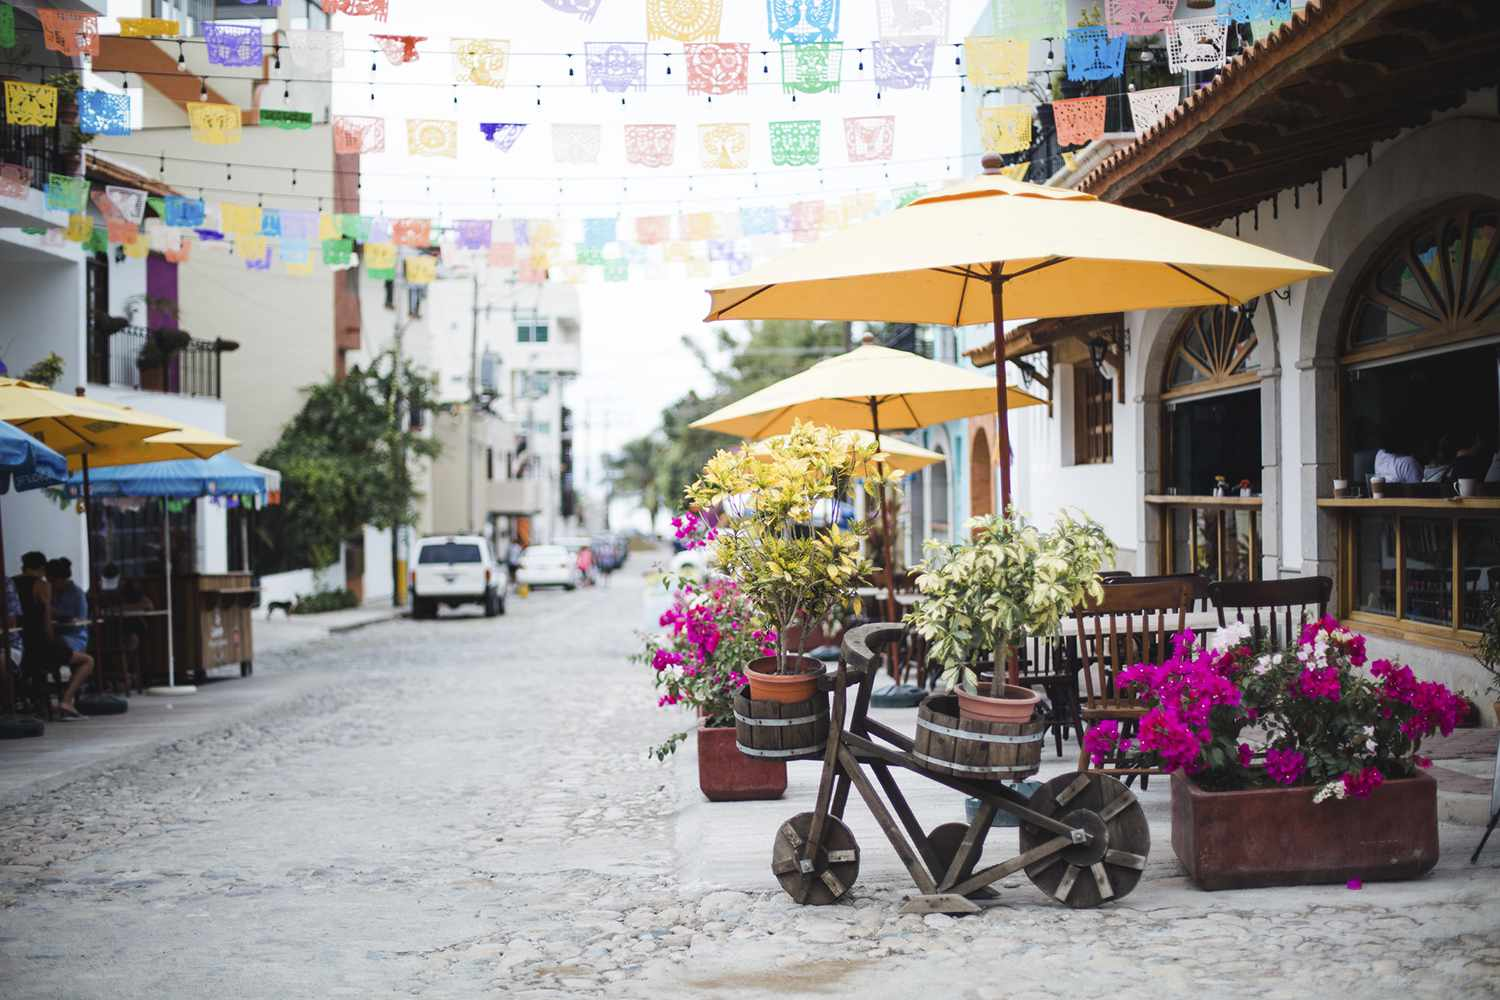 A colorful street in Bucerias, Riviera Nayarit, Mexico